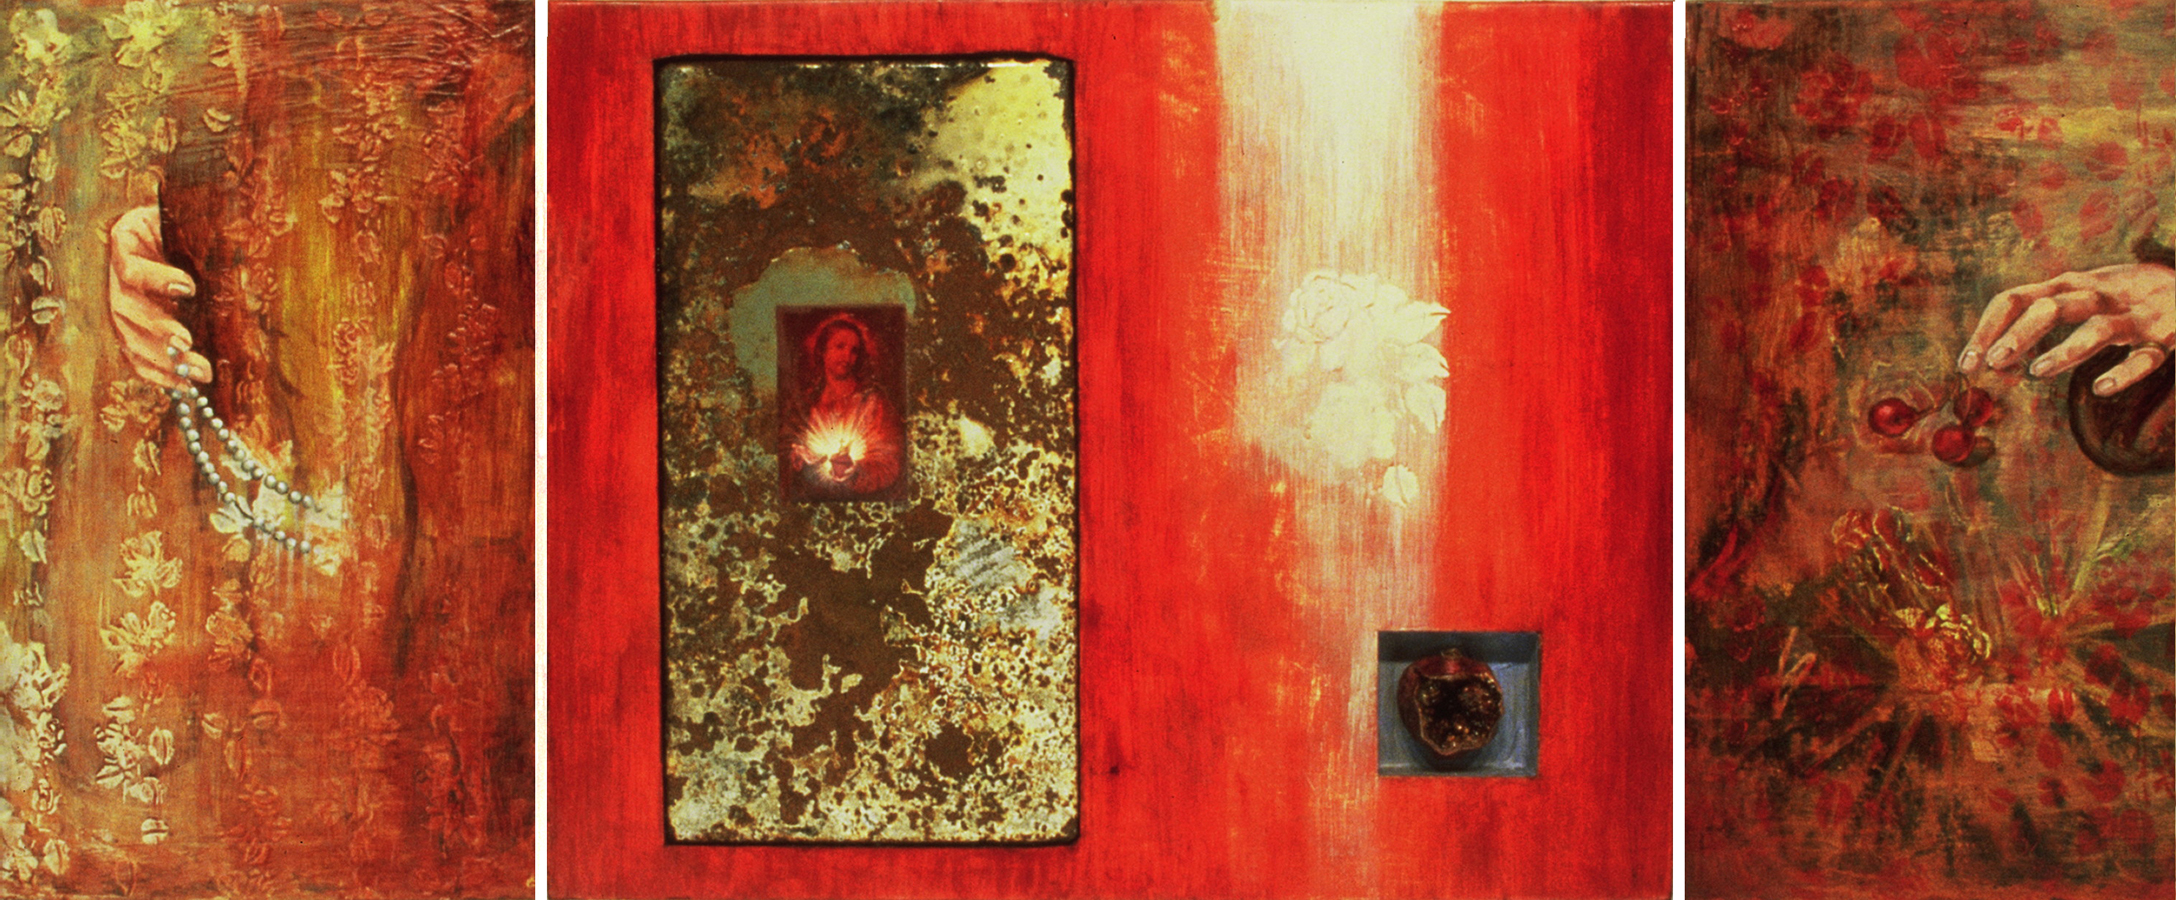 "Sins and Gifts of the Virgin Mother  ©1993 Mixed Media on Wood Panel 24"" x 60 "" Collection of Rene Kock, Point Arena, CA"